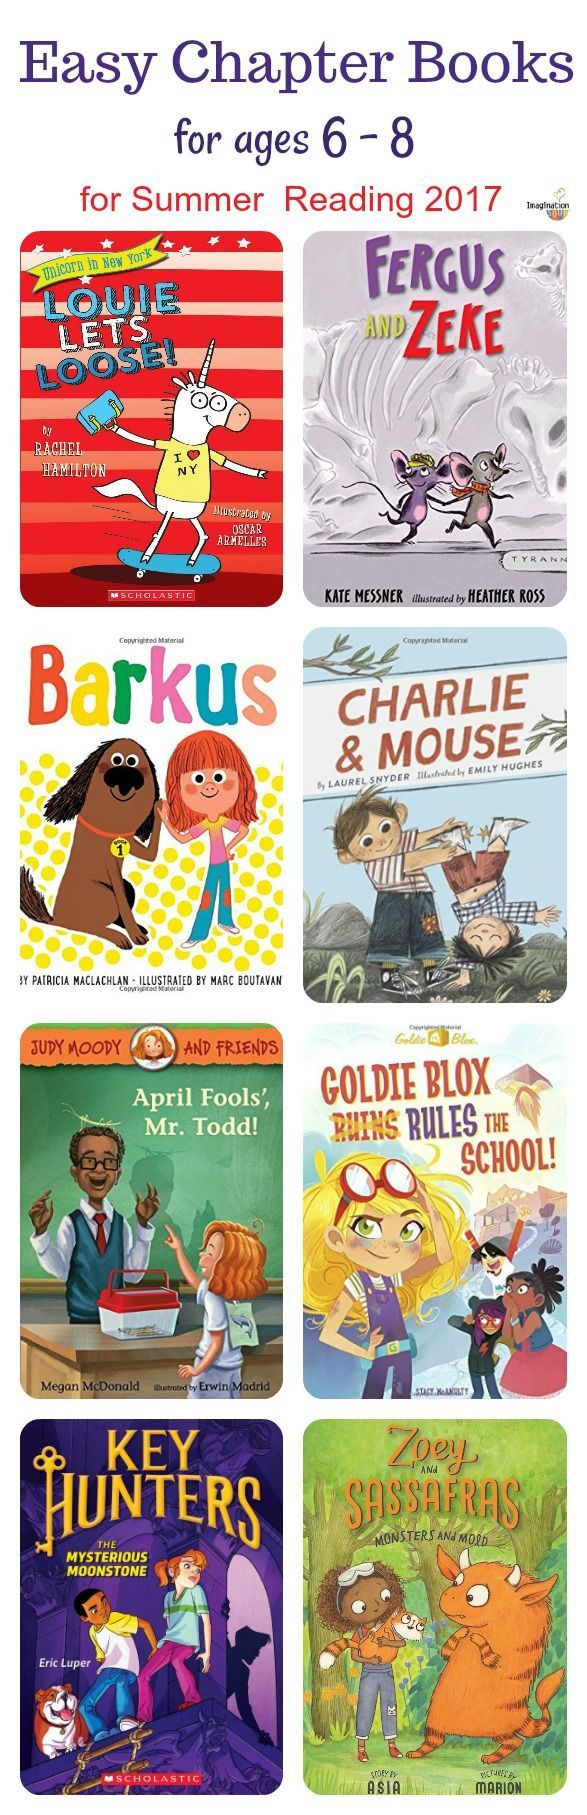 get your kids ages 6 to 8 reading with new, easy chapter books for 2017